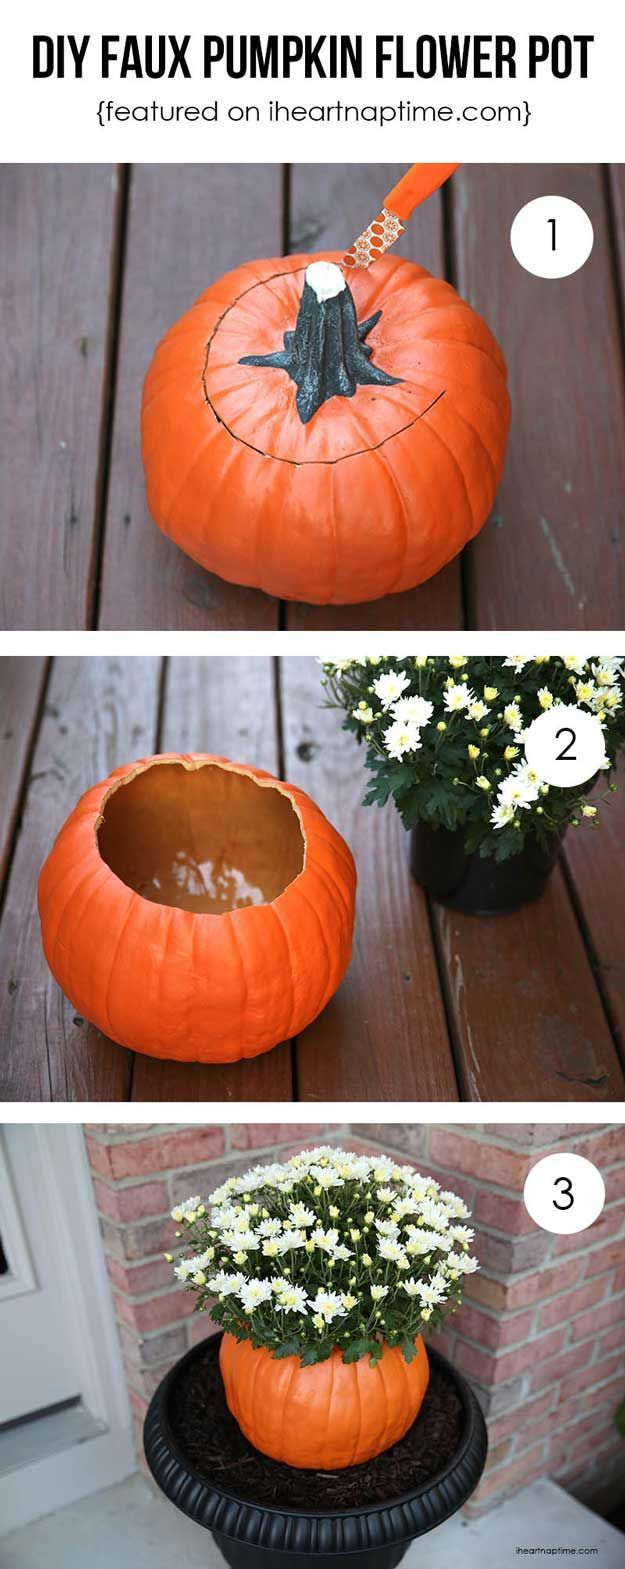 905 best diy inspiration file images on pinterest bedrooms craft diy fall decor projects solutioingenieria Image collections